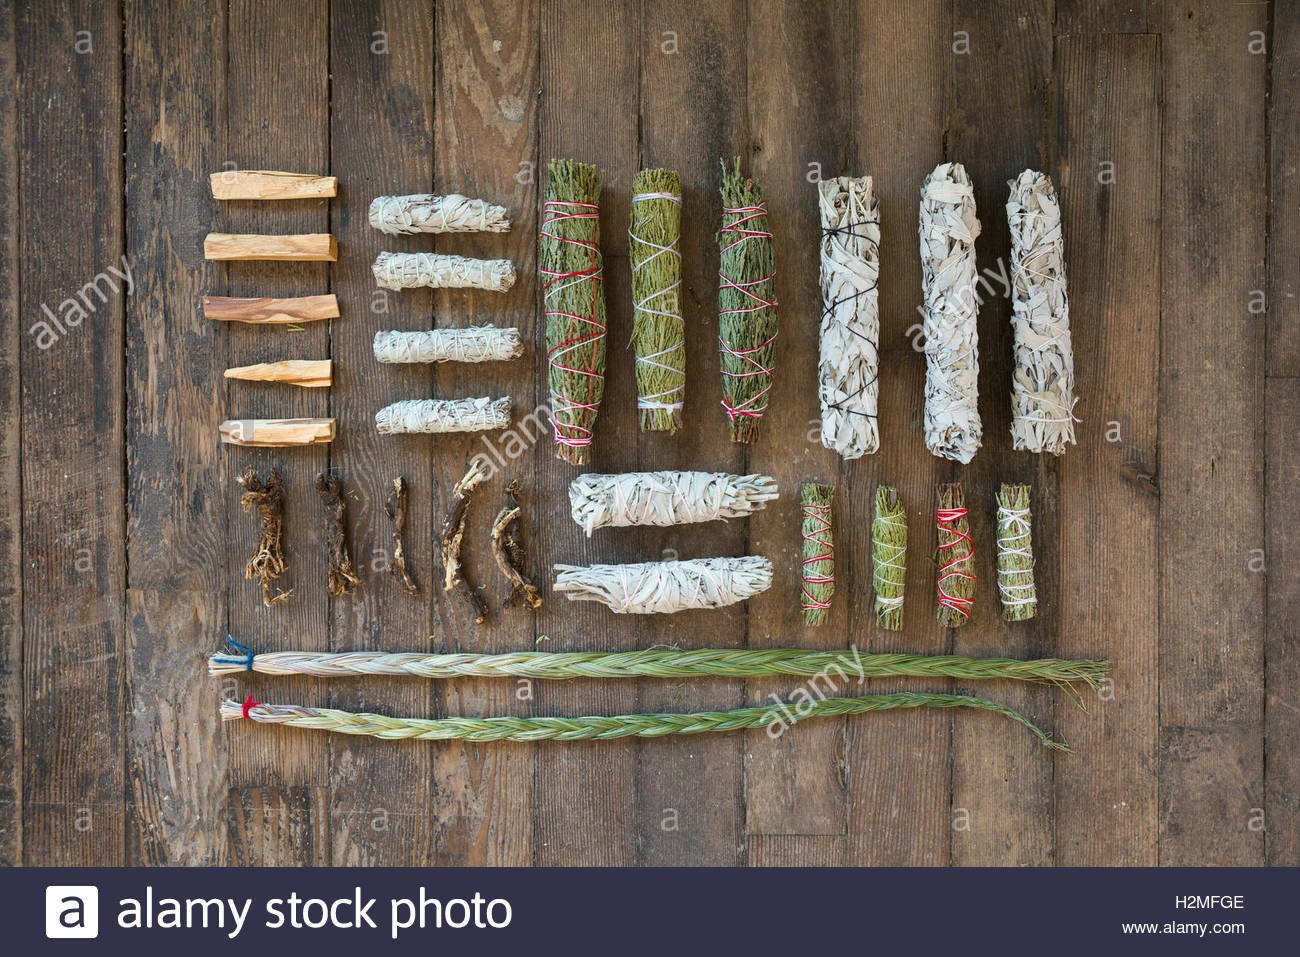 Overhead view smudge sticks and patio santo on wooden floor - Stock Image